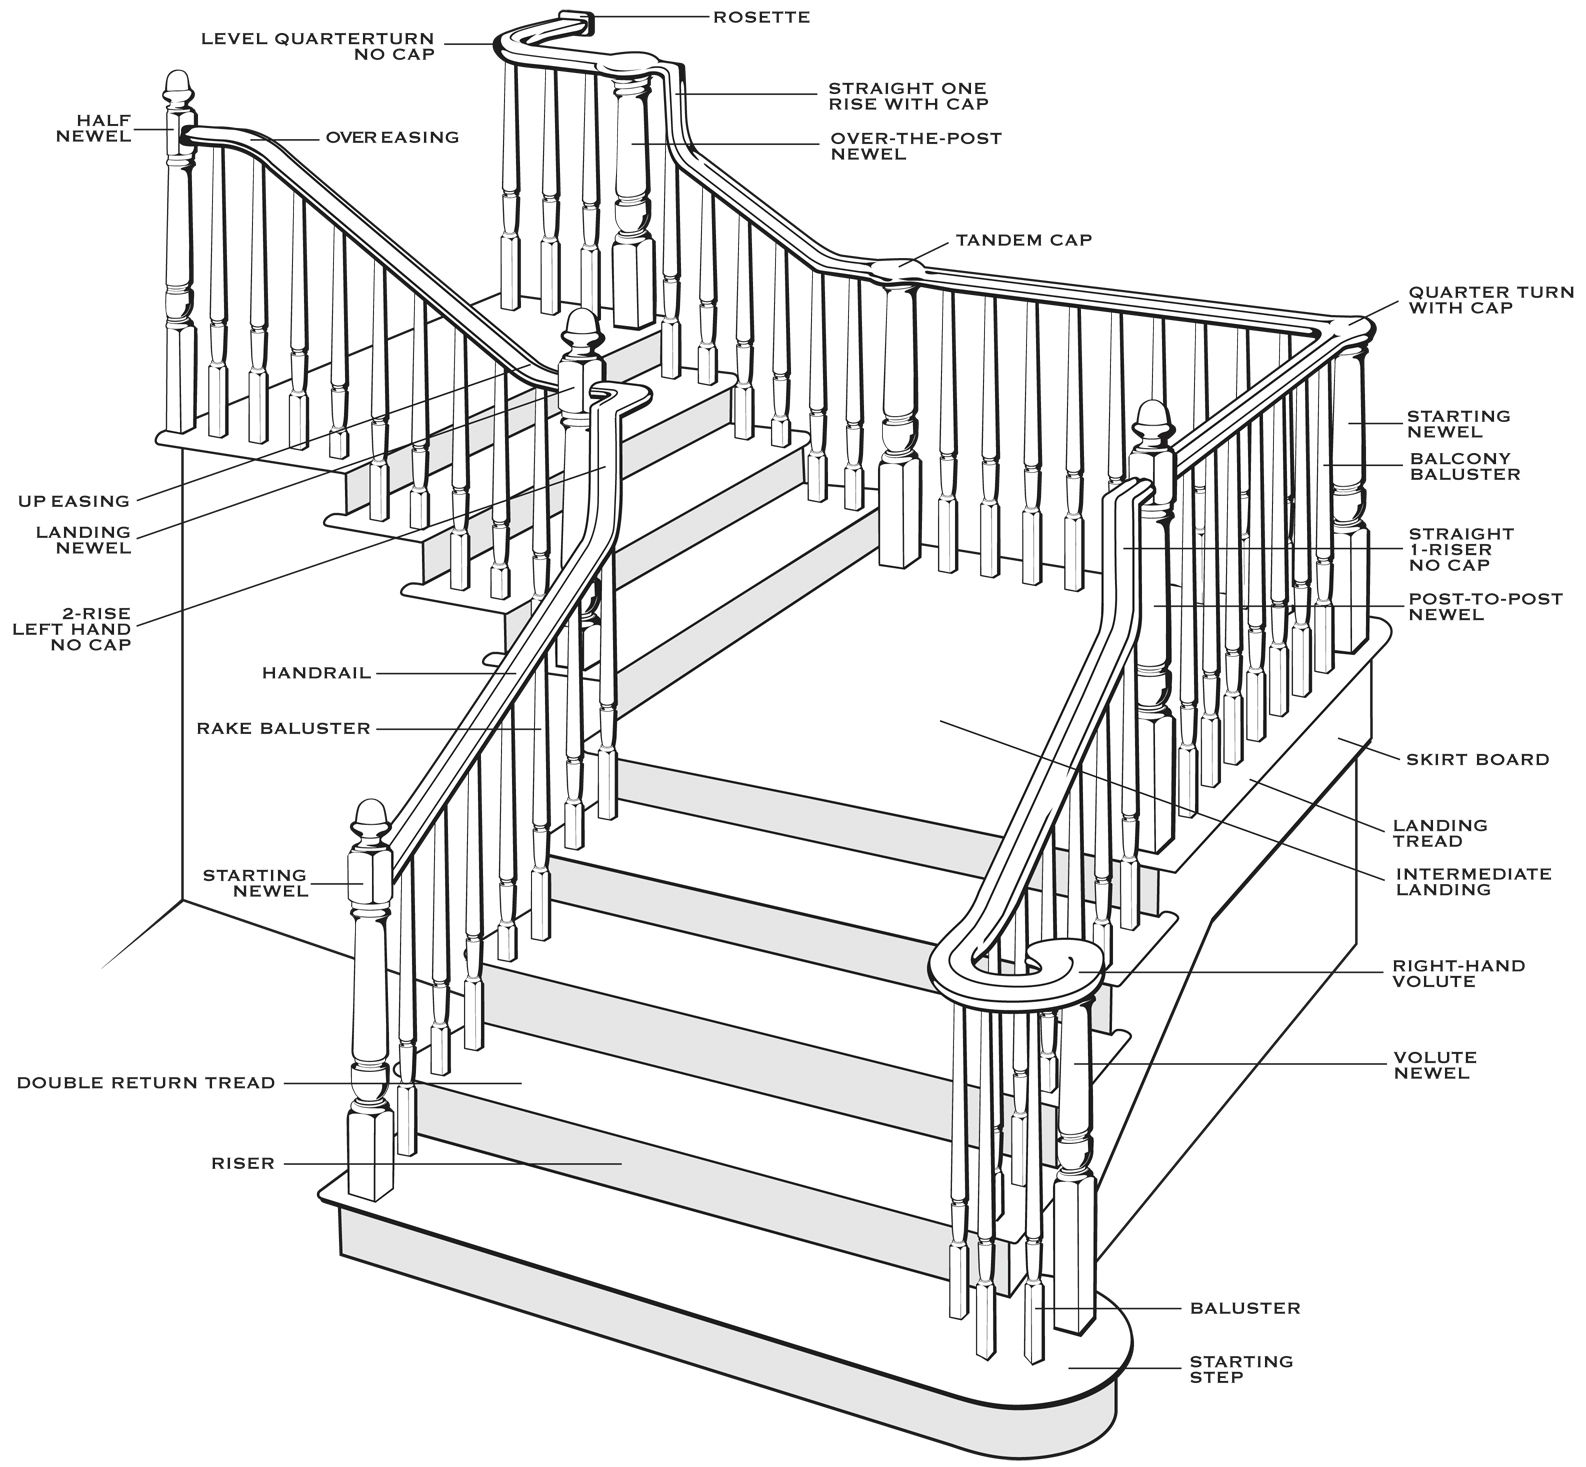 High Quality Parts Of Stairs 6 Diagram Of Stair Parts Terminology 1586 X 1467 Jpg 1586 1467 Stair Railing Parts Parts Of Stairs Stair Parts